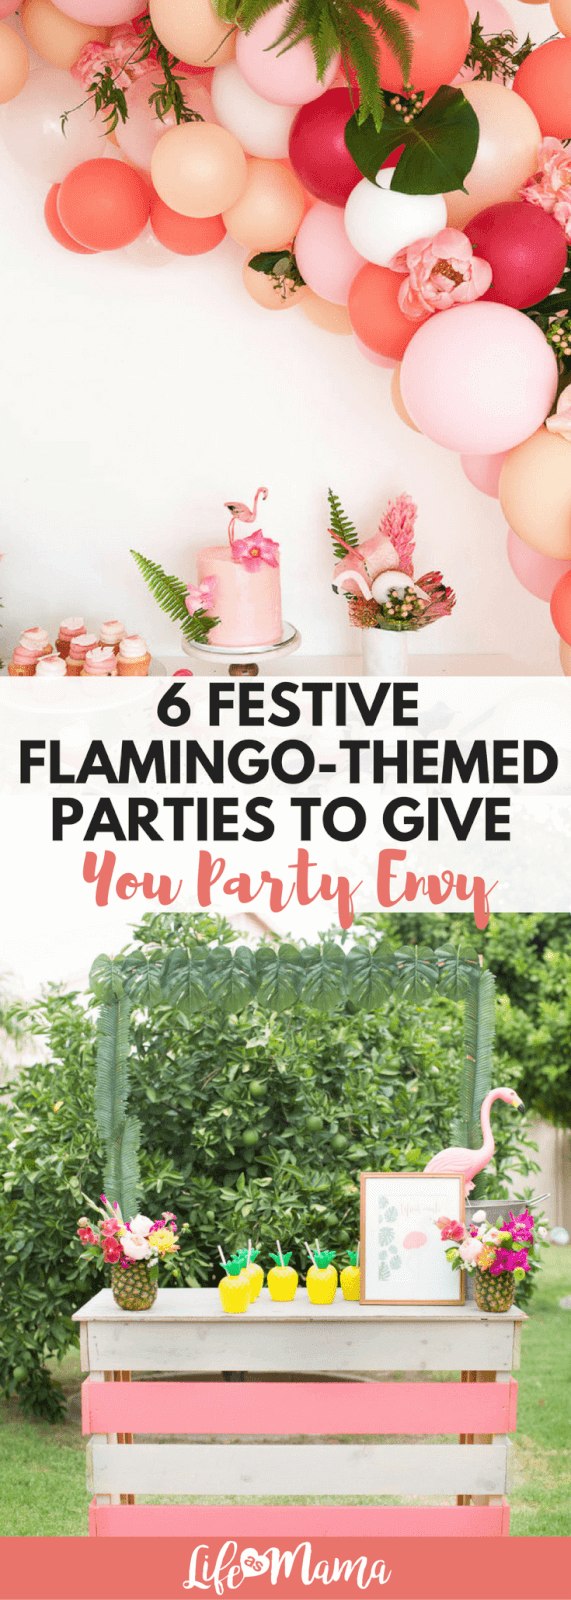 flaming-themed parties